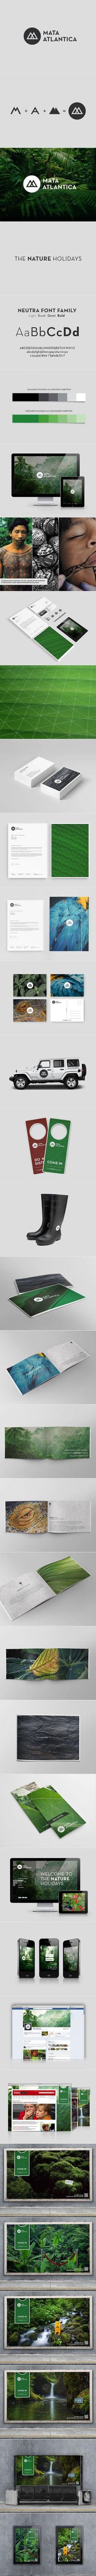 Did you see those vibrant business cards? We love Mata Atlântica's entire branding look! #branding #logo: